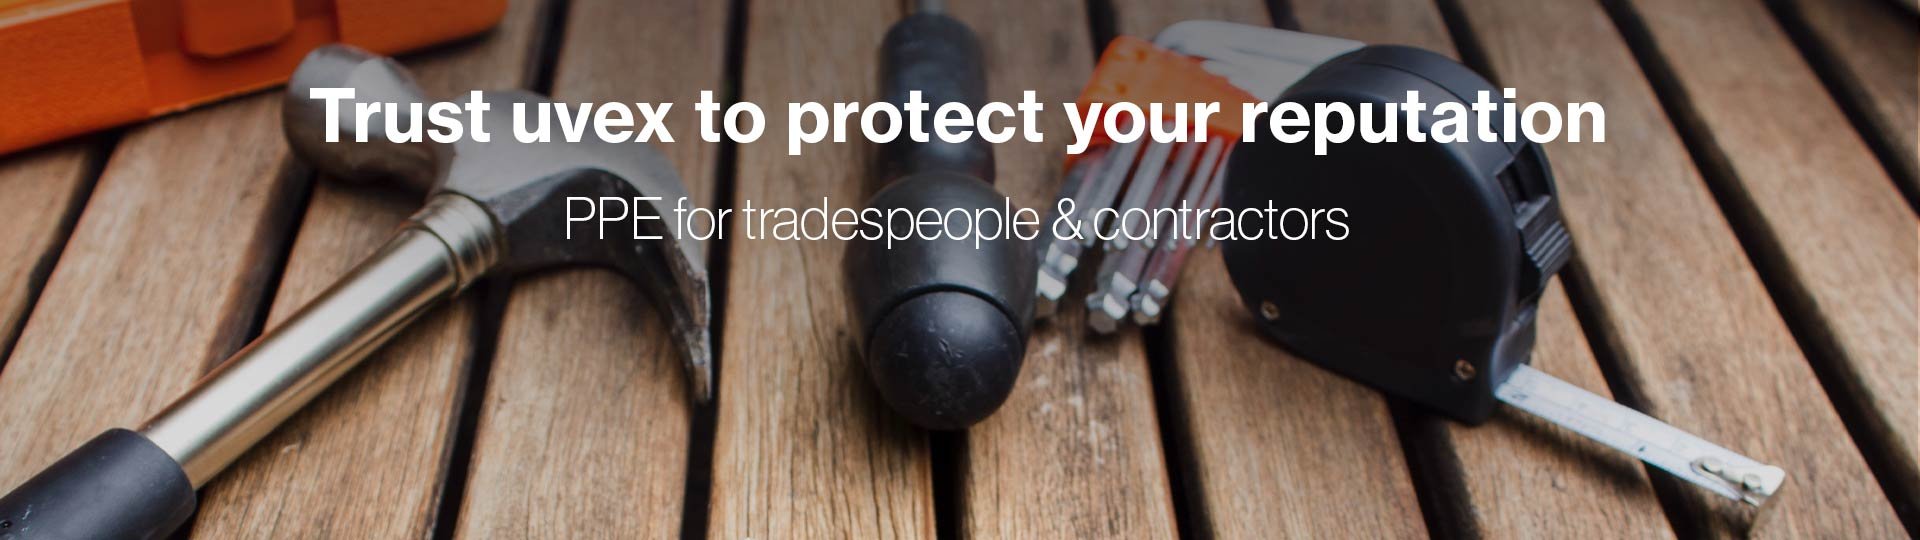 PPE perfectly suited for tradespeople